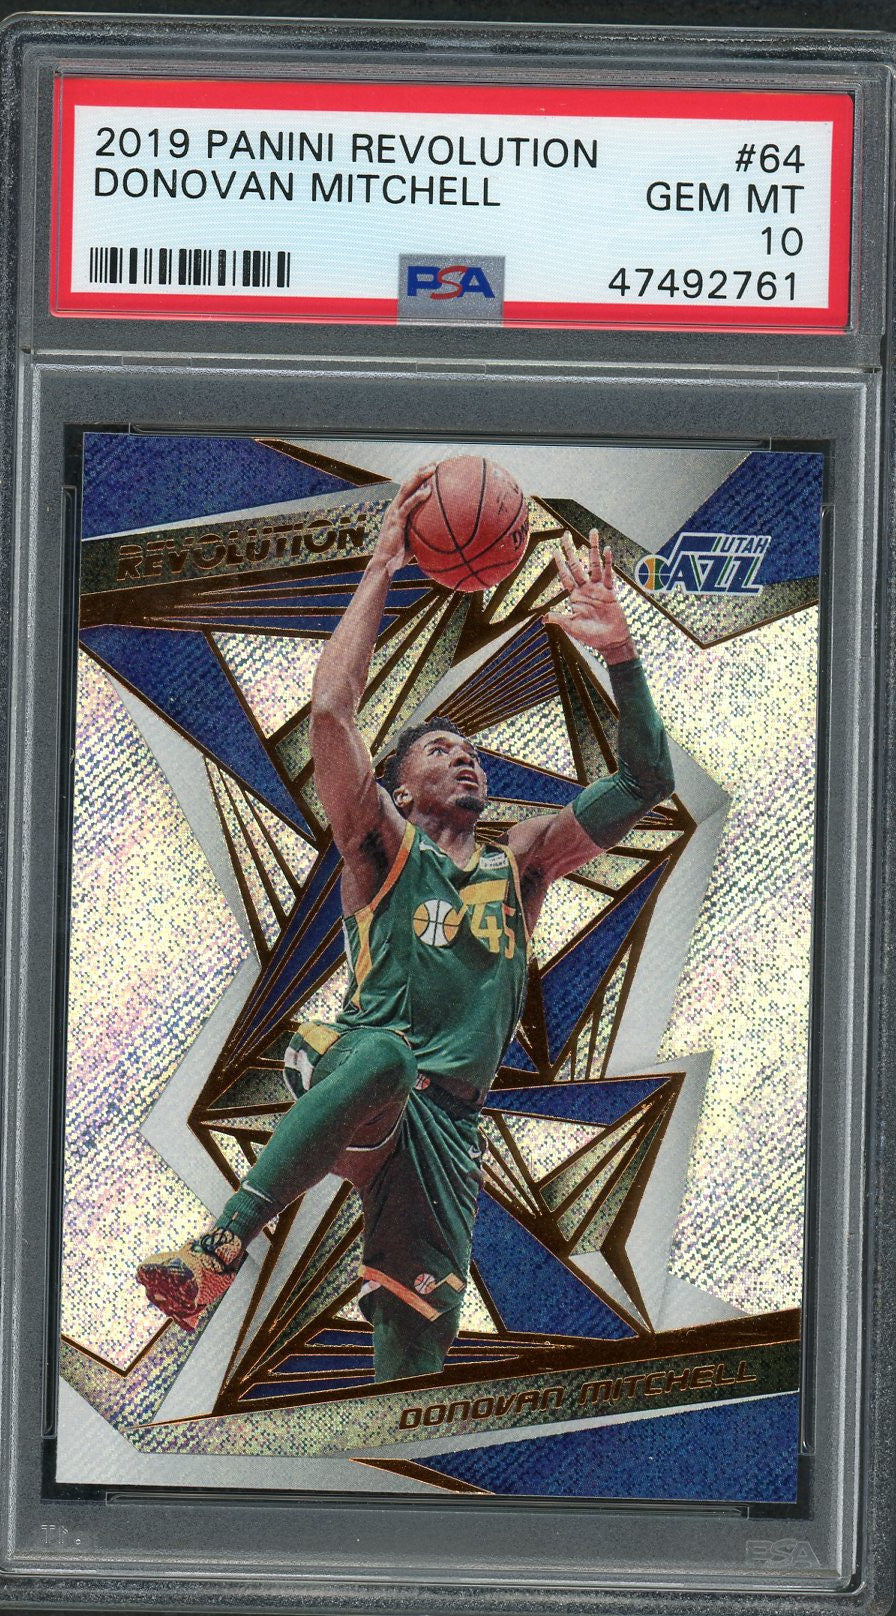 Donovan Mitchell Utah Jazz 2019 Panini Revolution Basketball Card #64 Graded PSA 10 GEM MINT-Powers Sports Memorabilia